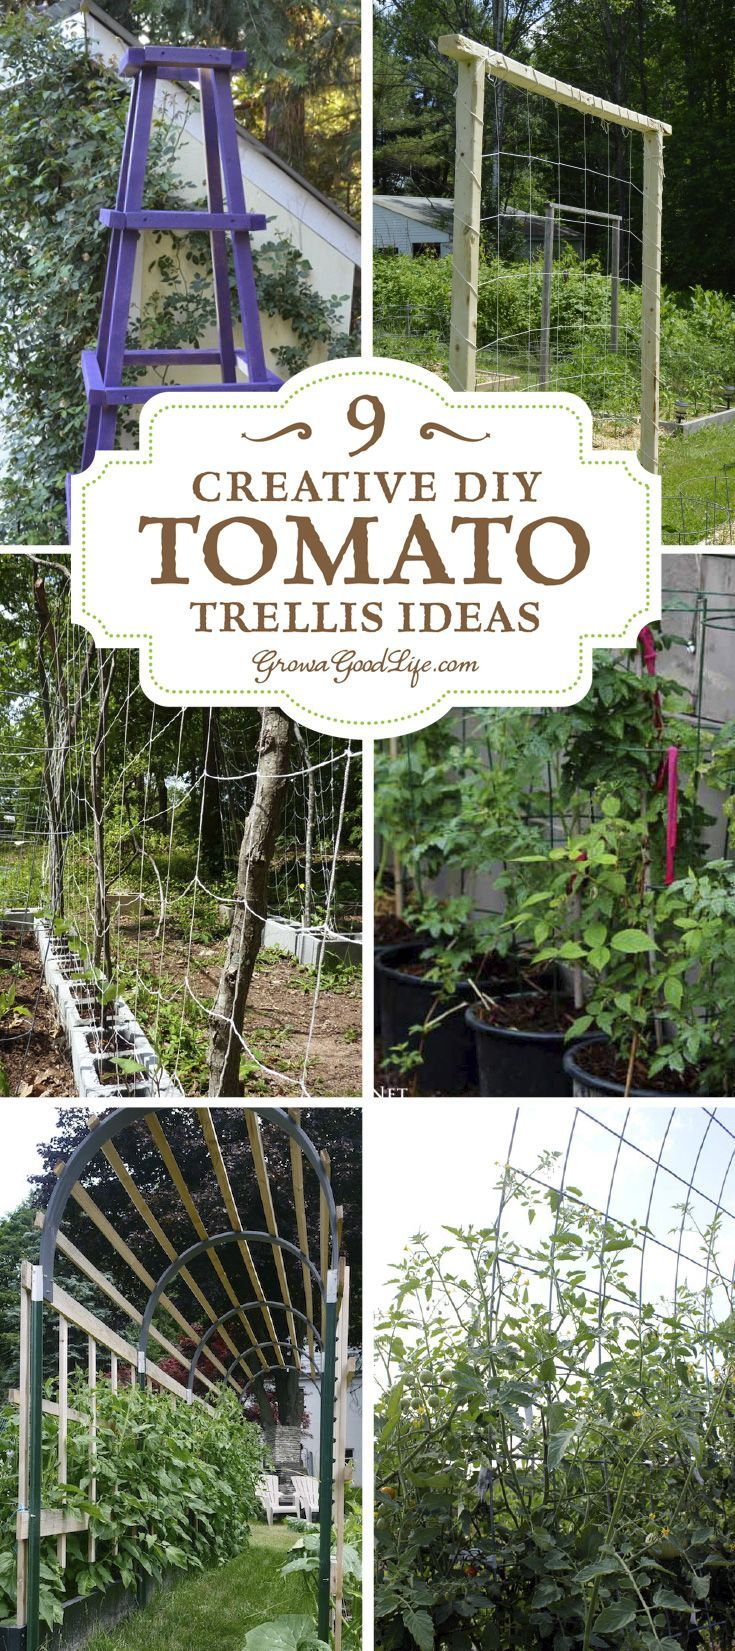 Tomato Garden Ideas soil growing tomatoes for beginners 9 Creative Diy Tomato Trellis Ideas